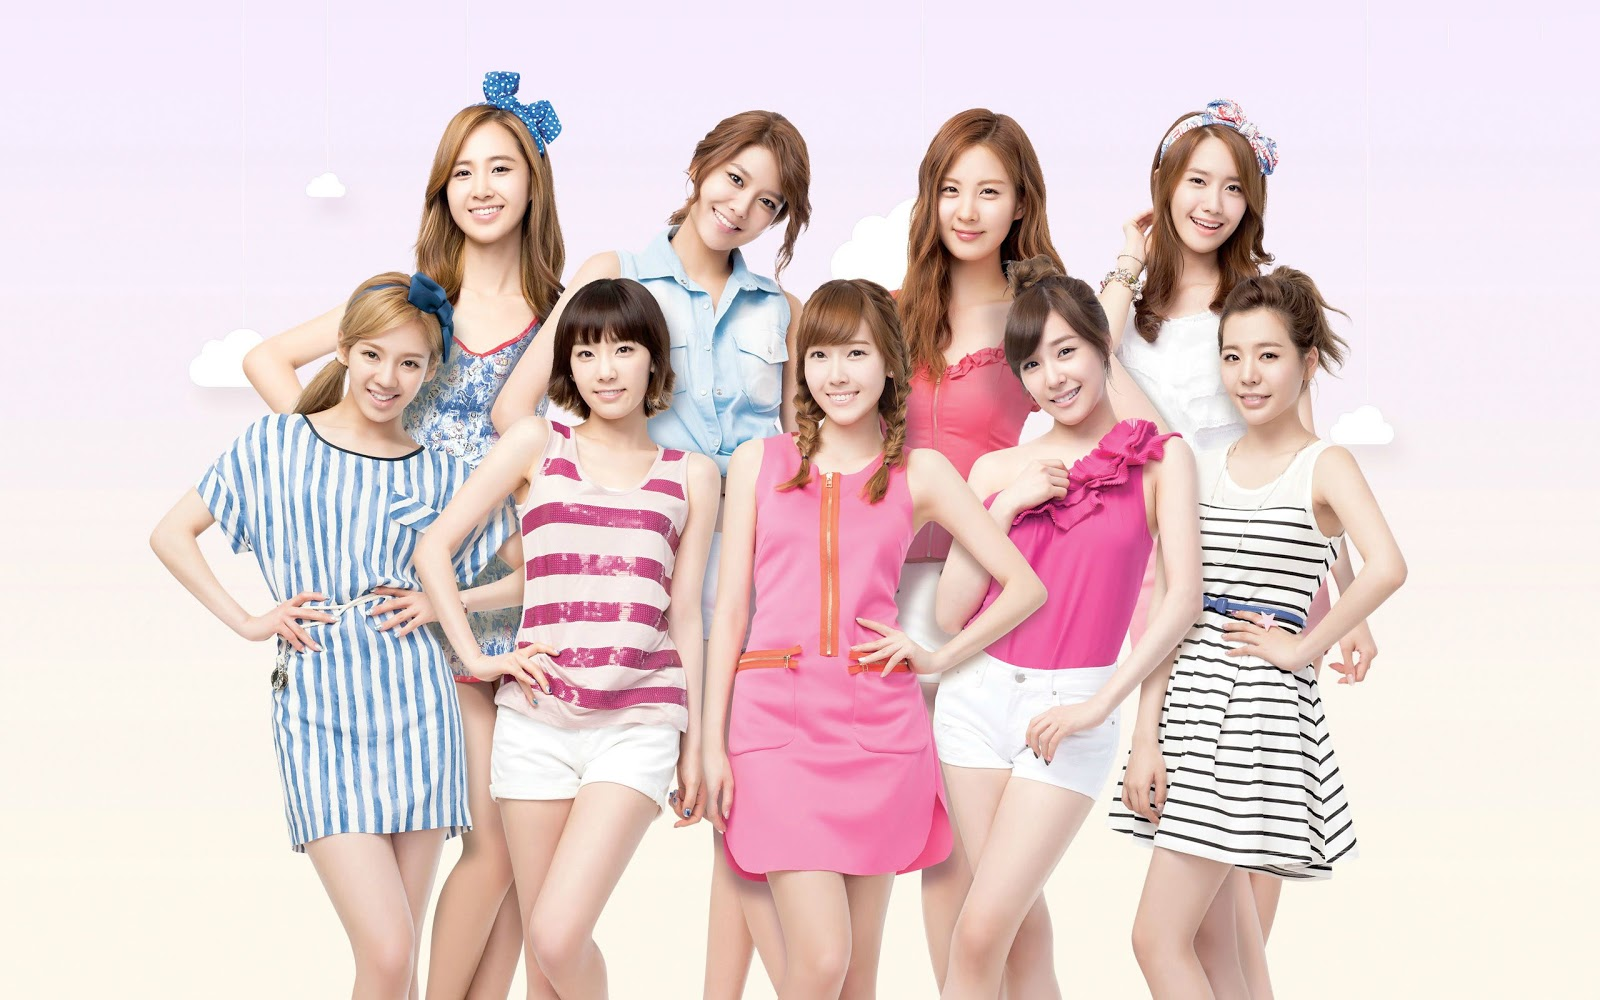 http://2.bp.blogspot.com/-bmJ0oIM5iS0/UMVlhfG4rWI/AAAAAAAABcQ/sFrz4LJqb6c/s1600/girls+generation+snsd+wallpaper.jpg